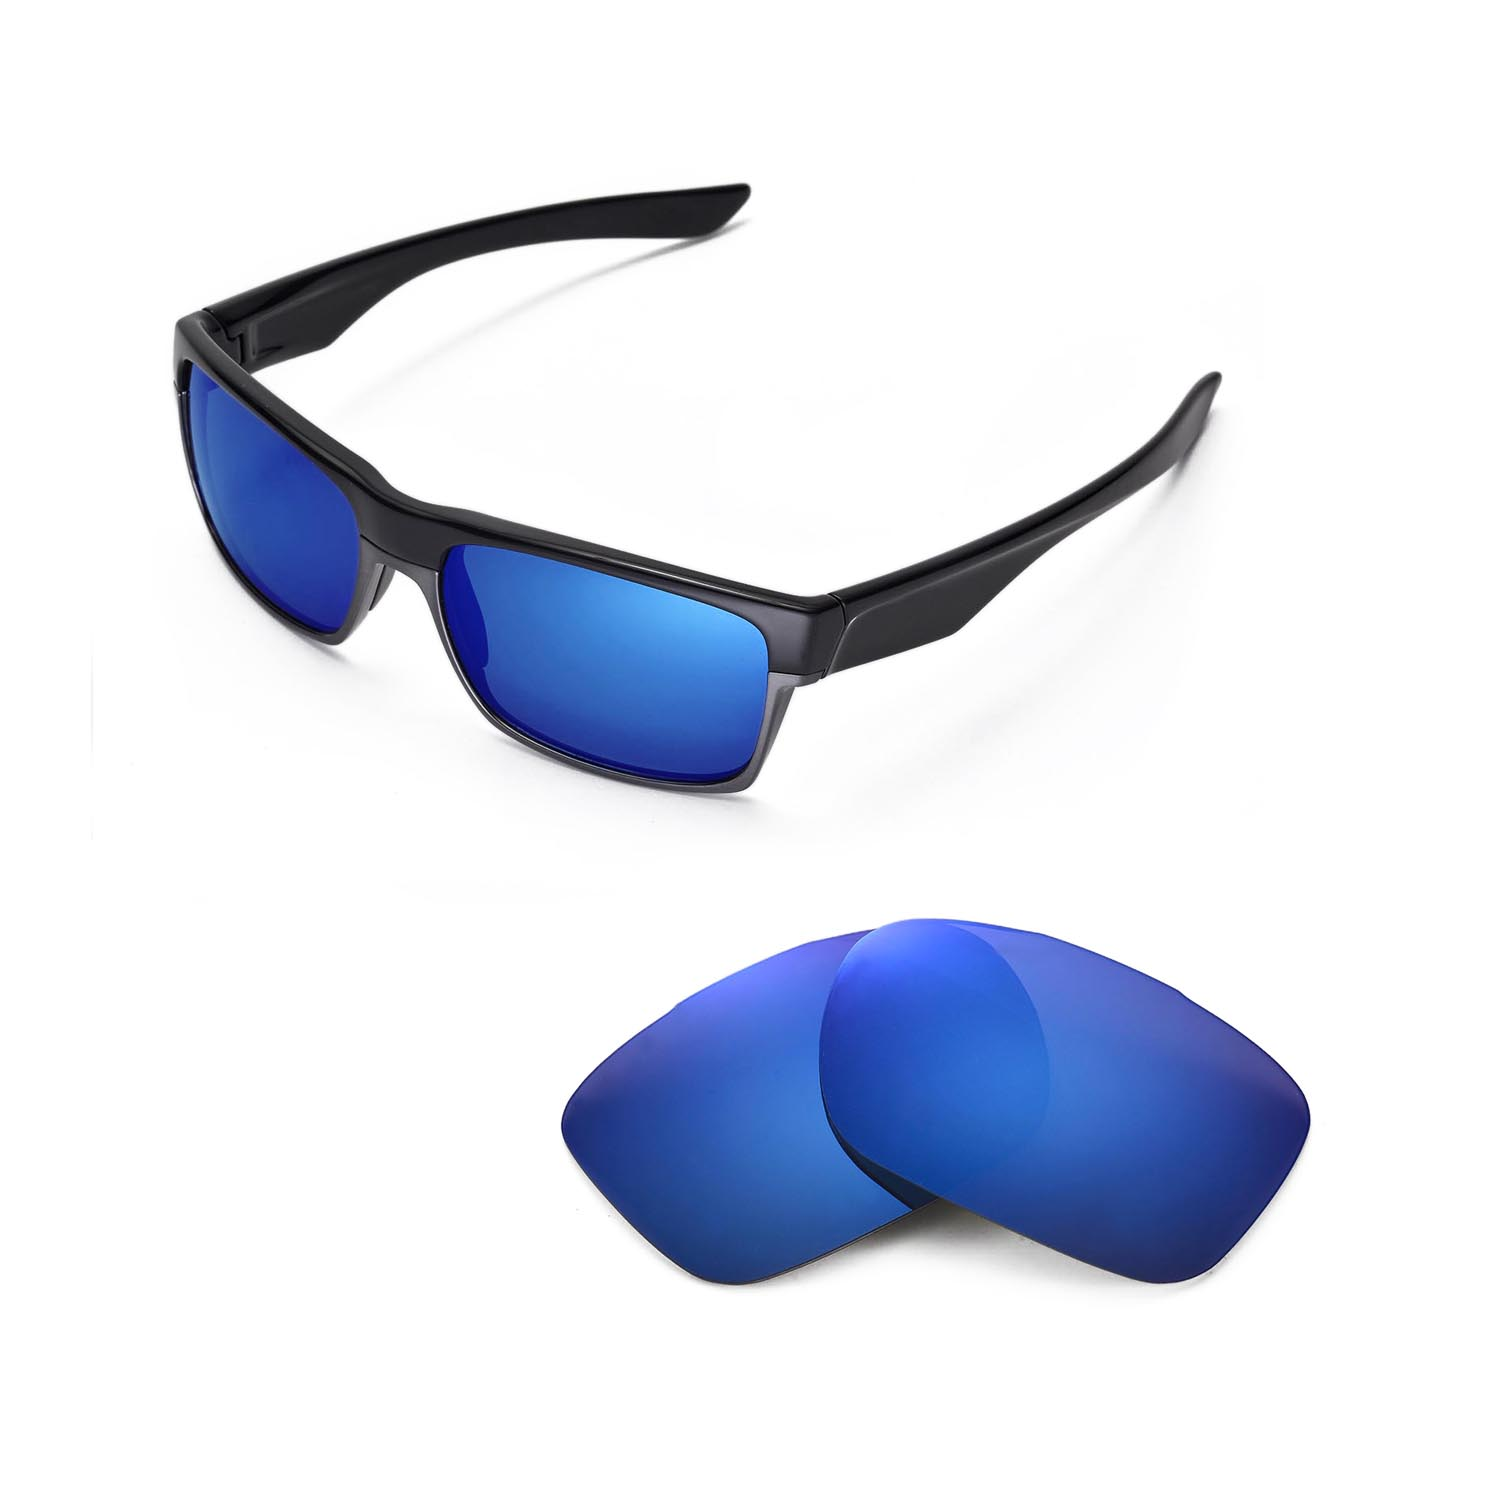 4f88bf79485 Oakley Twoface Replacement Lens